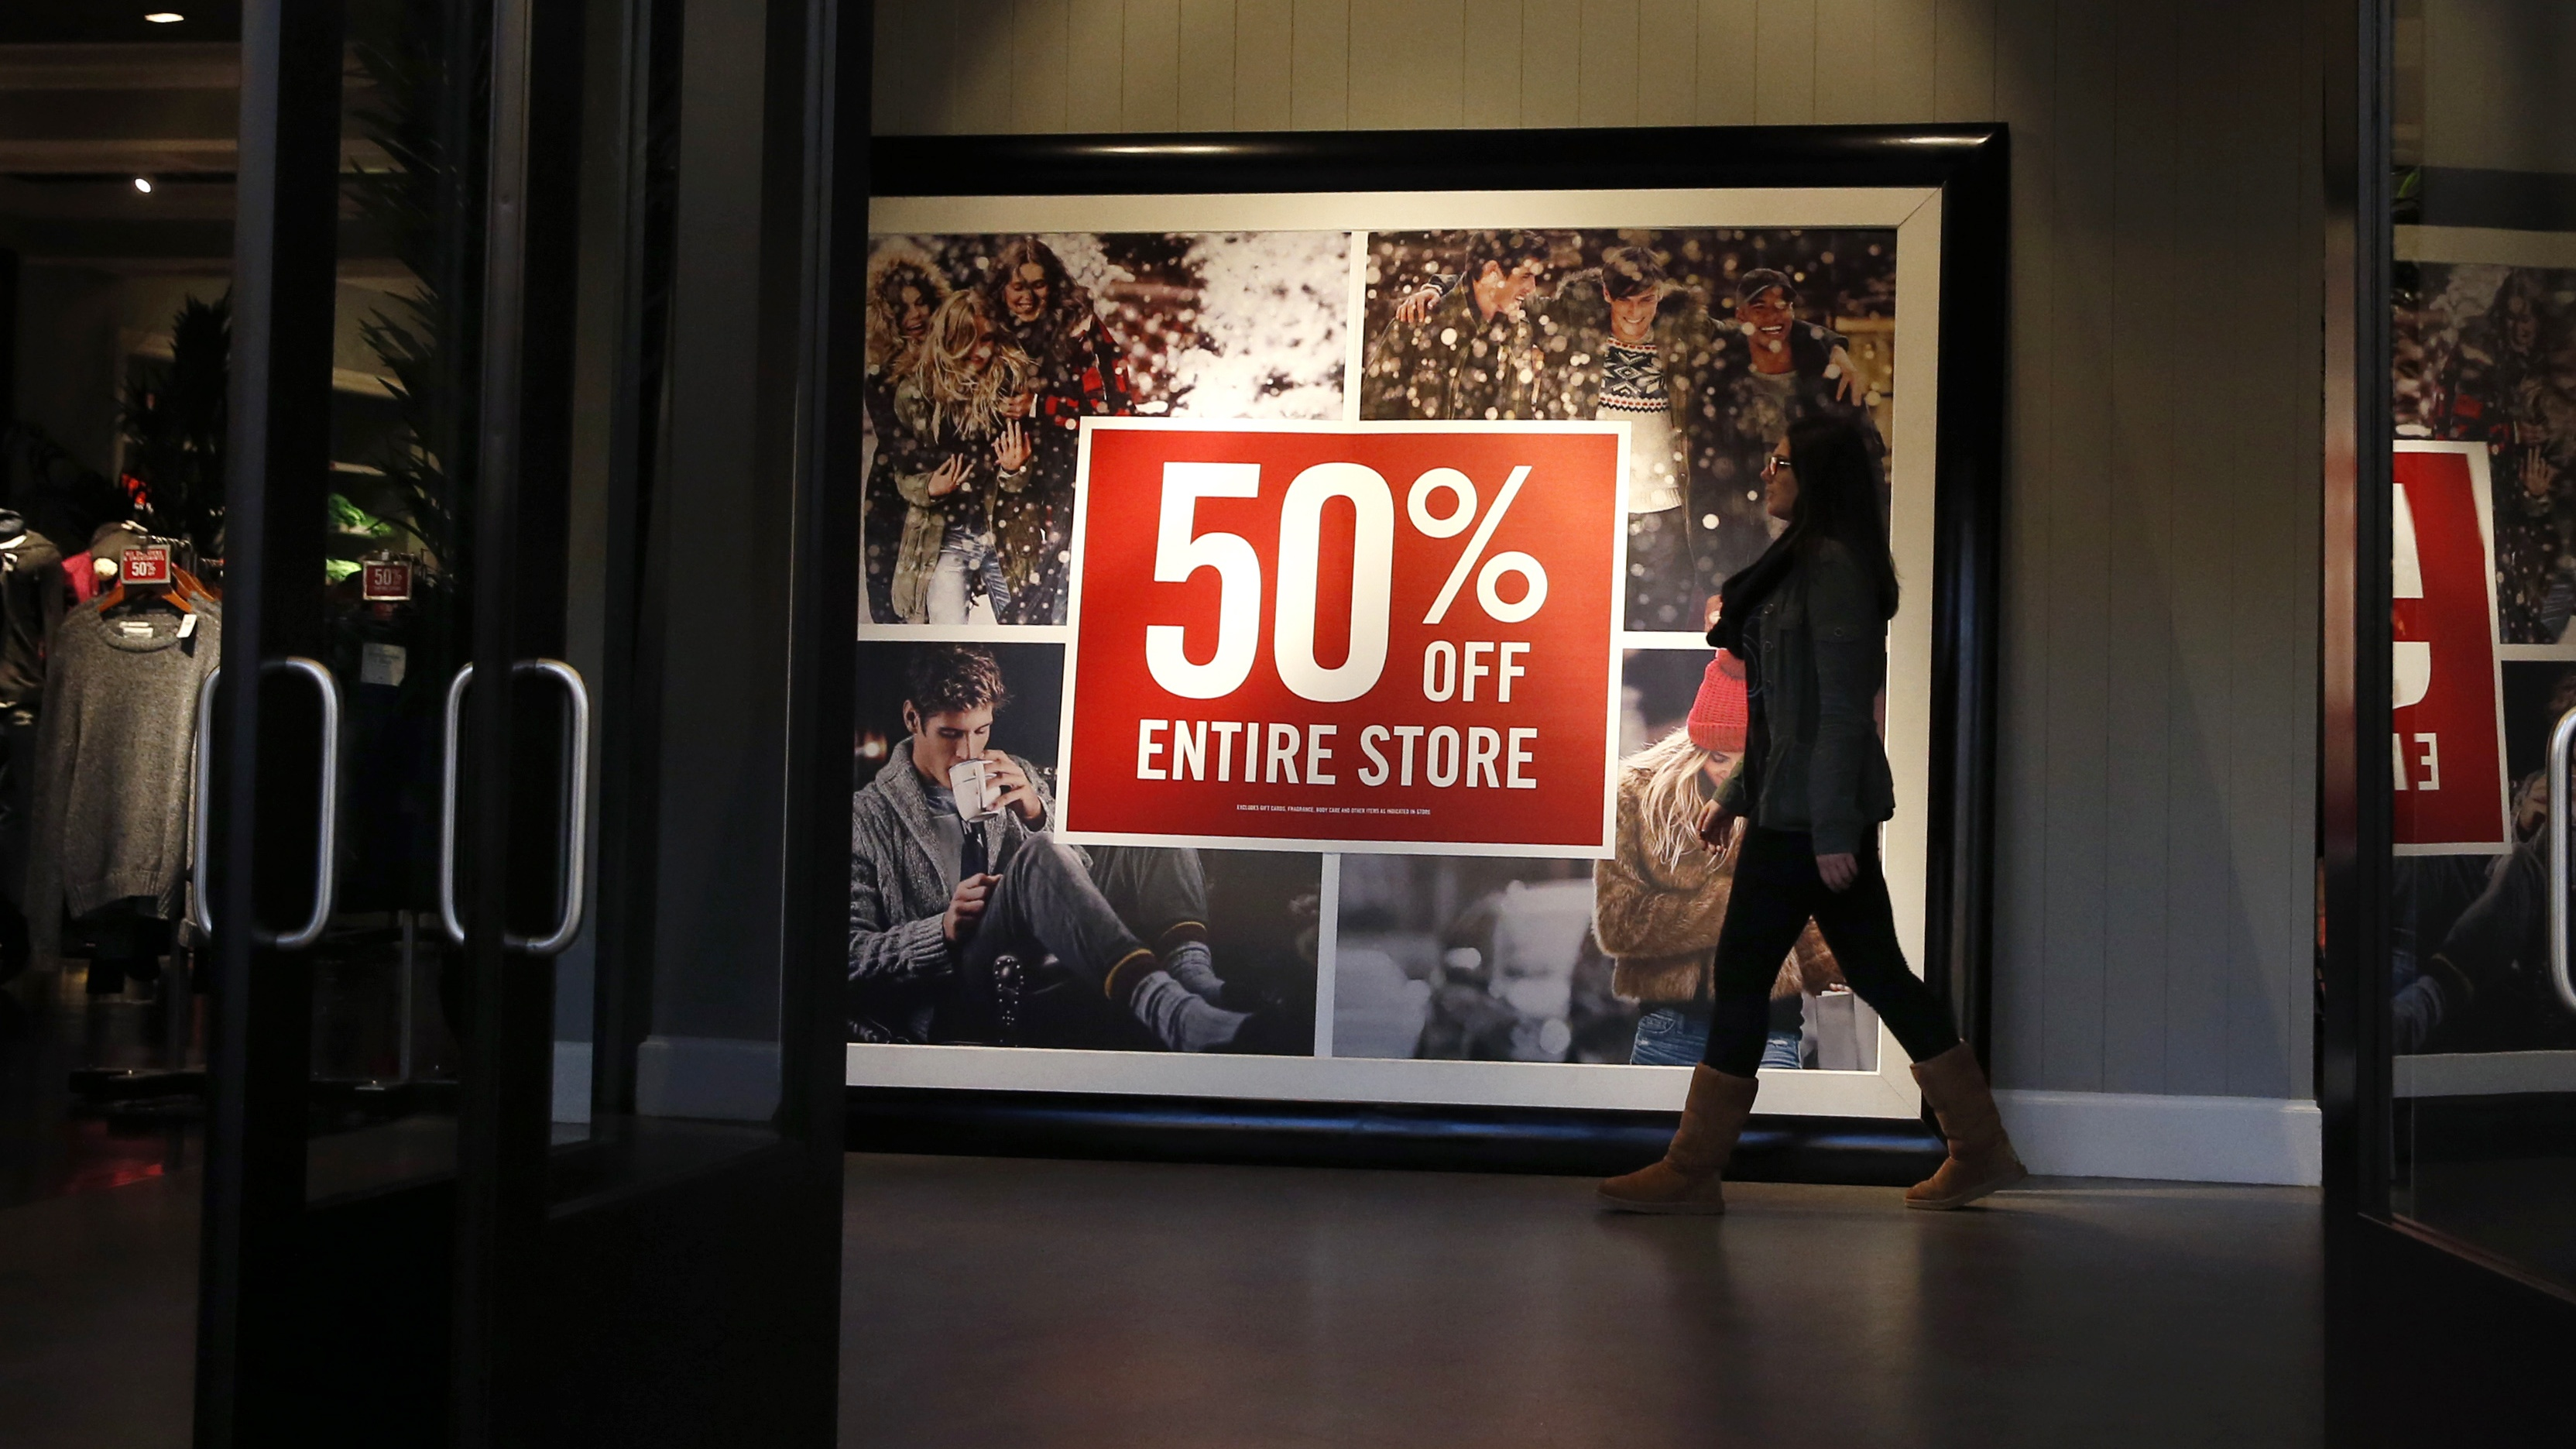 Global consumers are no longer willing to pay full price